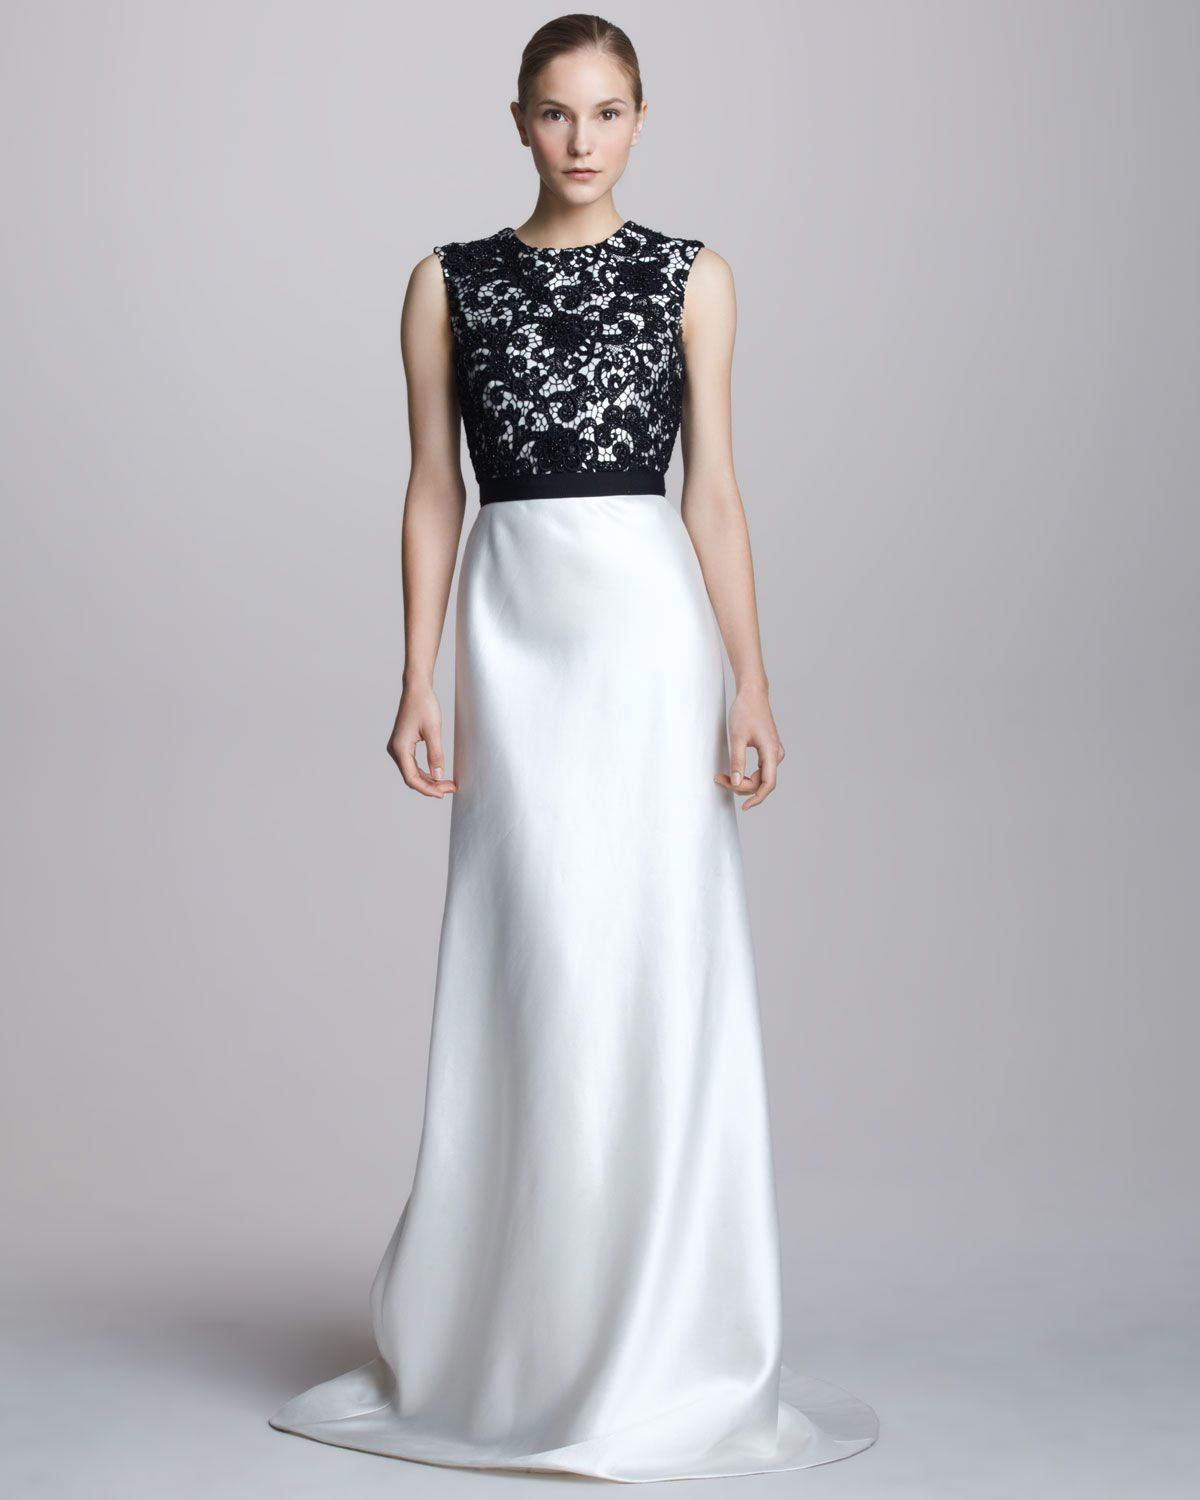 Neiman marcus dresses for weddings  Carmen Marc Valvo TwoTone LaceTop Gown  Vestidos de gala